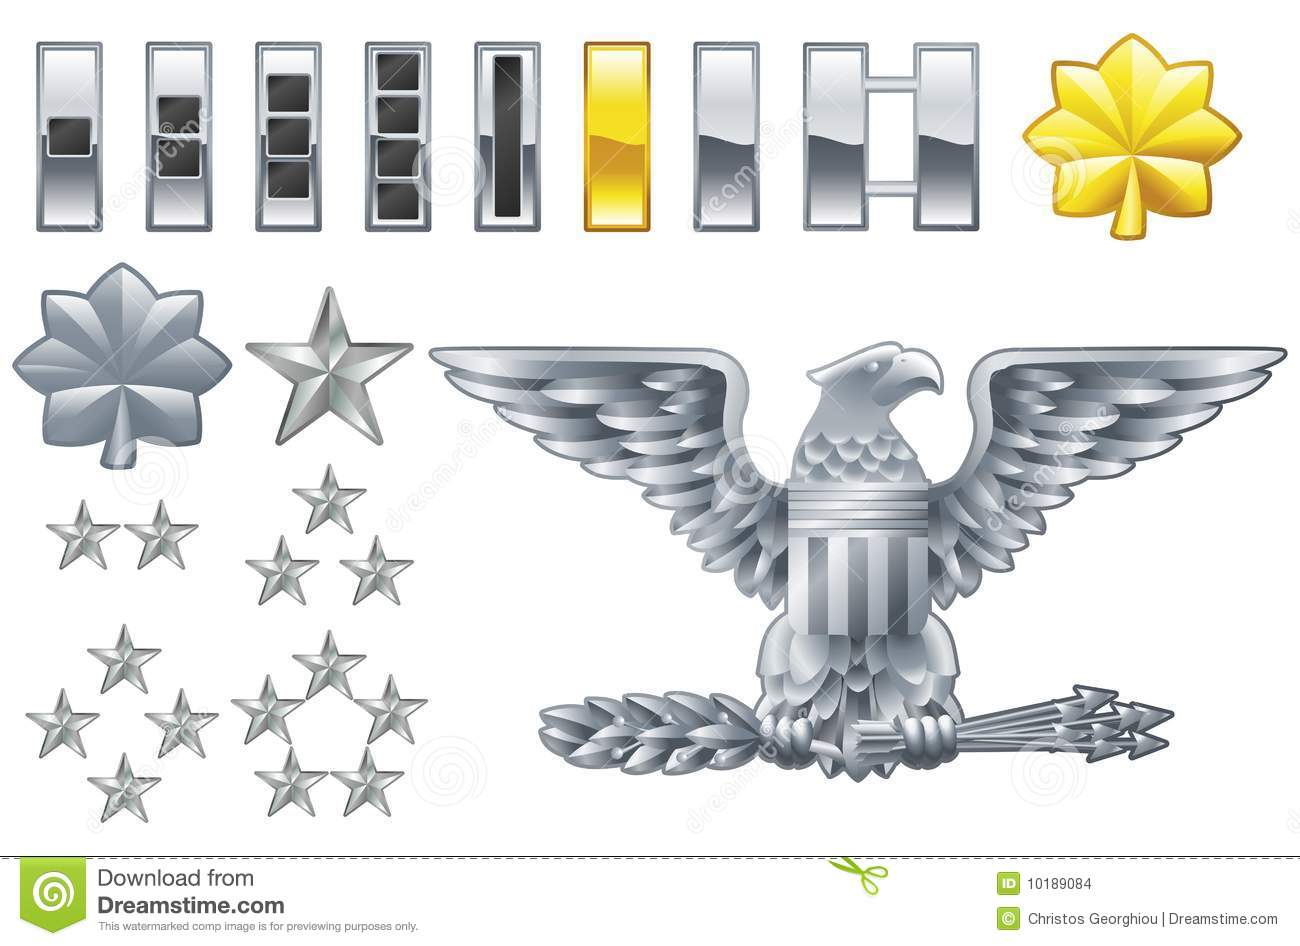 Army officer rankings